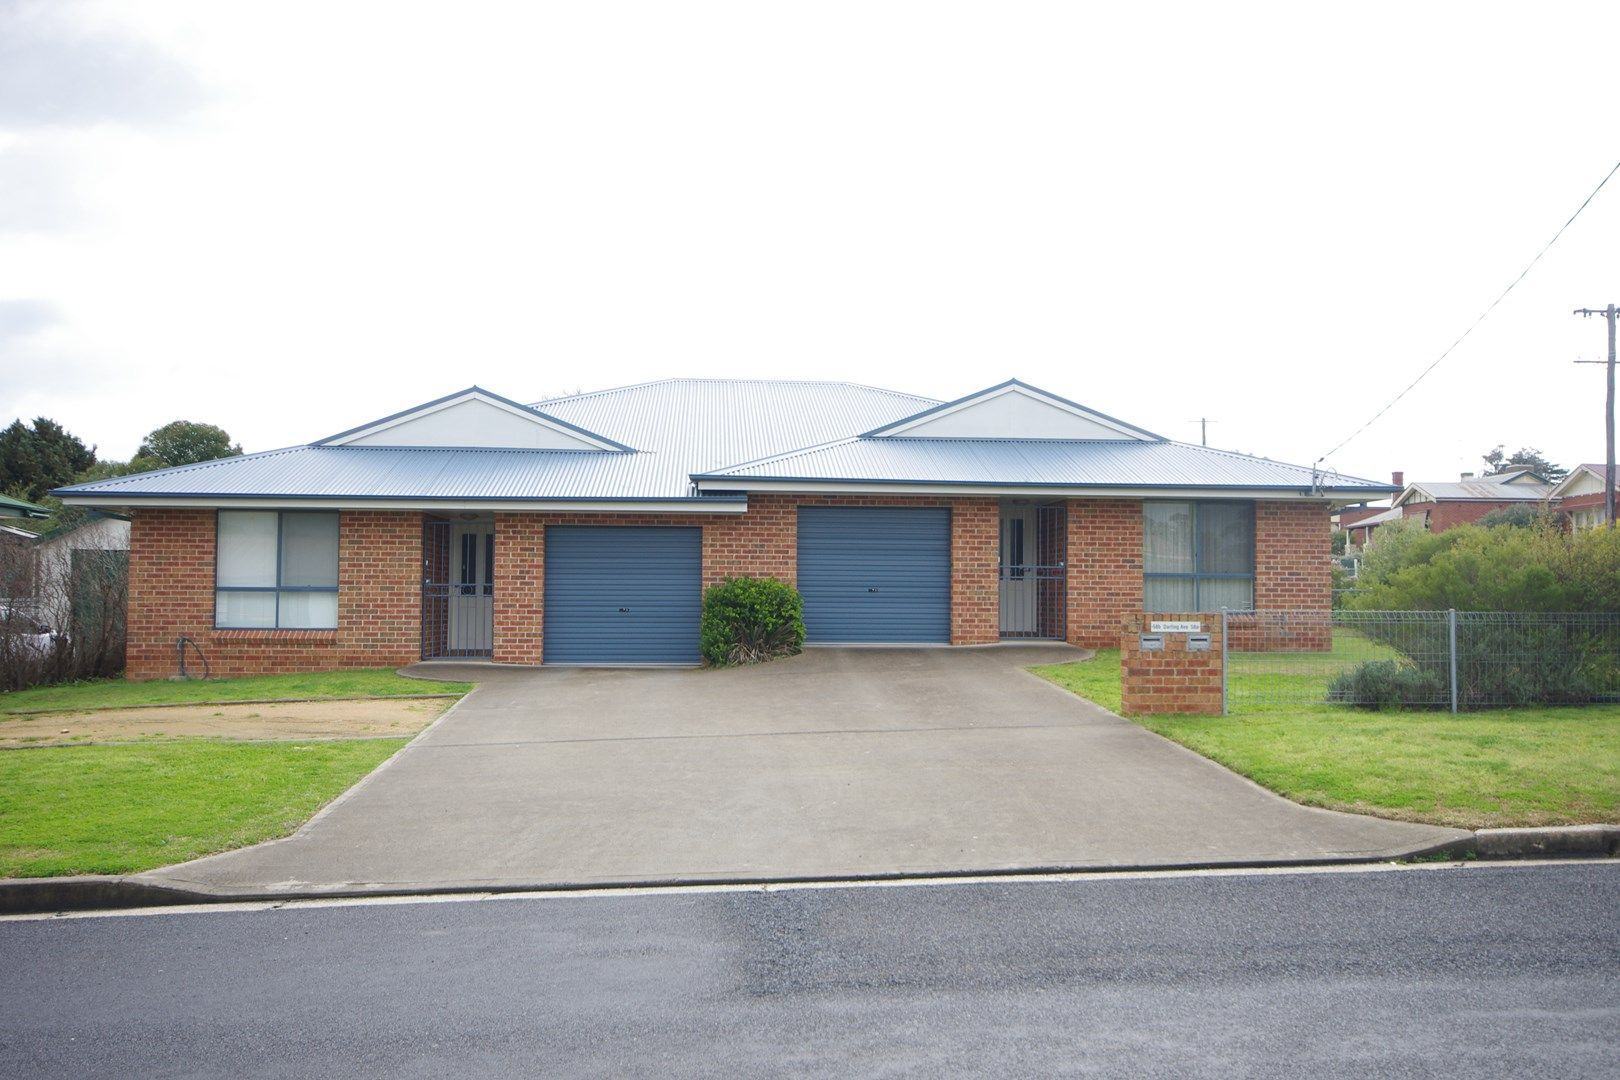 58A & 58B Darling Avenue, Cowra NSW 2794, Image 0